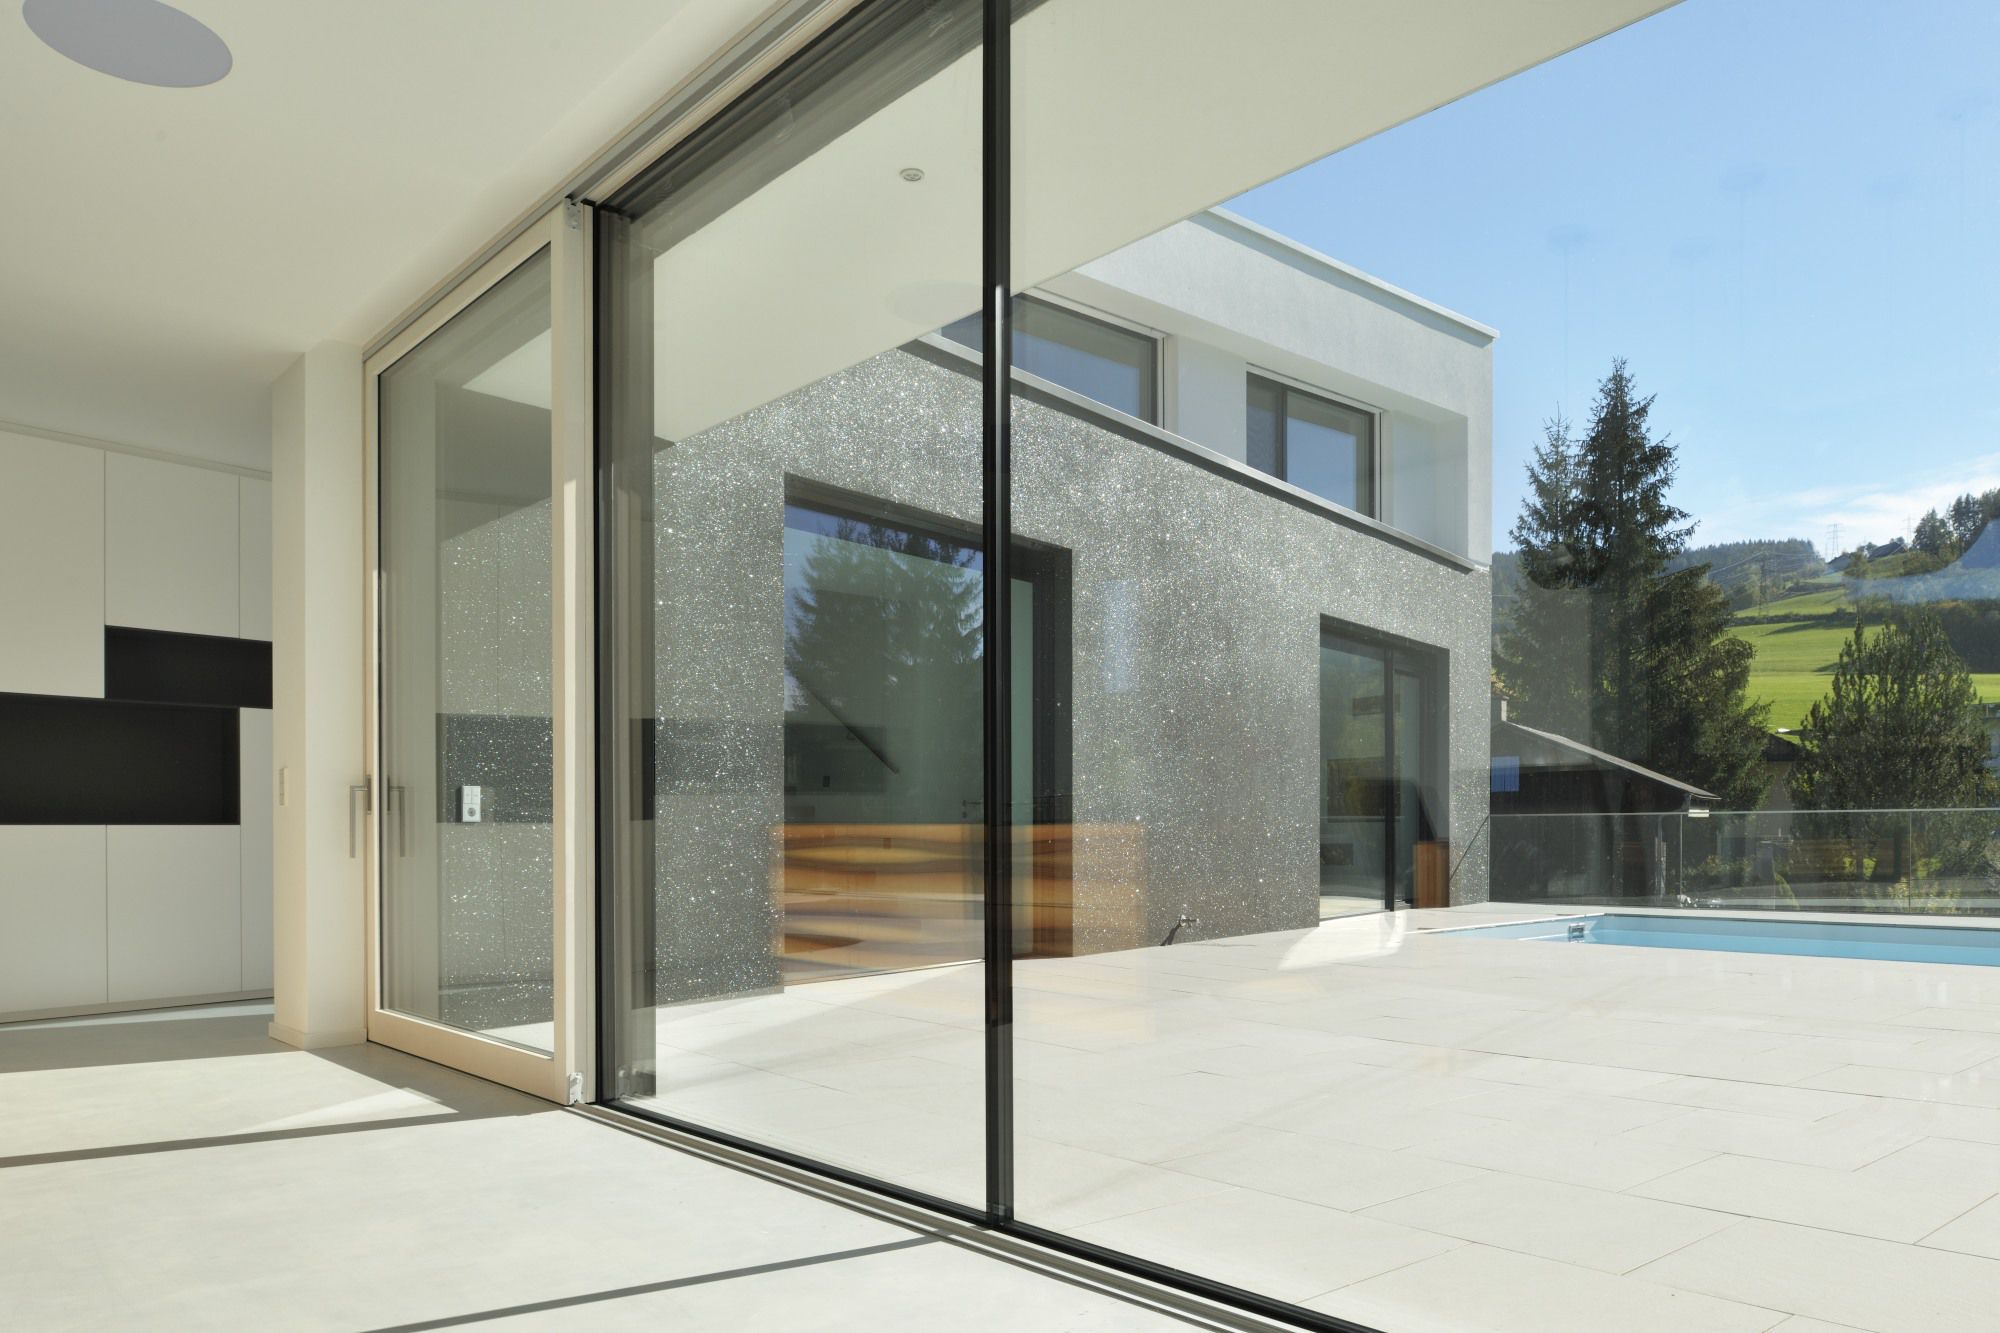 ... Sliding Patio Door / Wooden / Double Glazed PANORAMIC M SORA